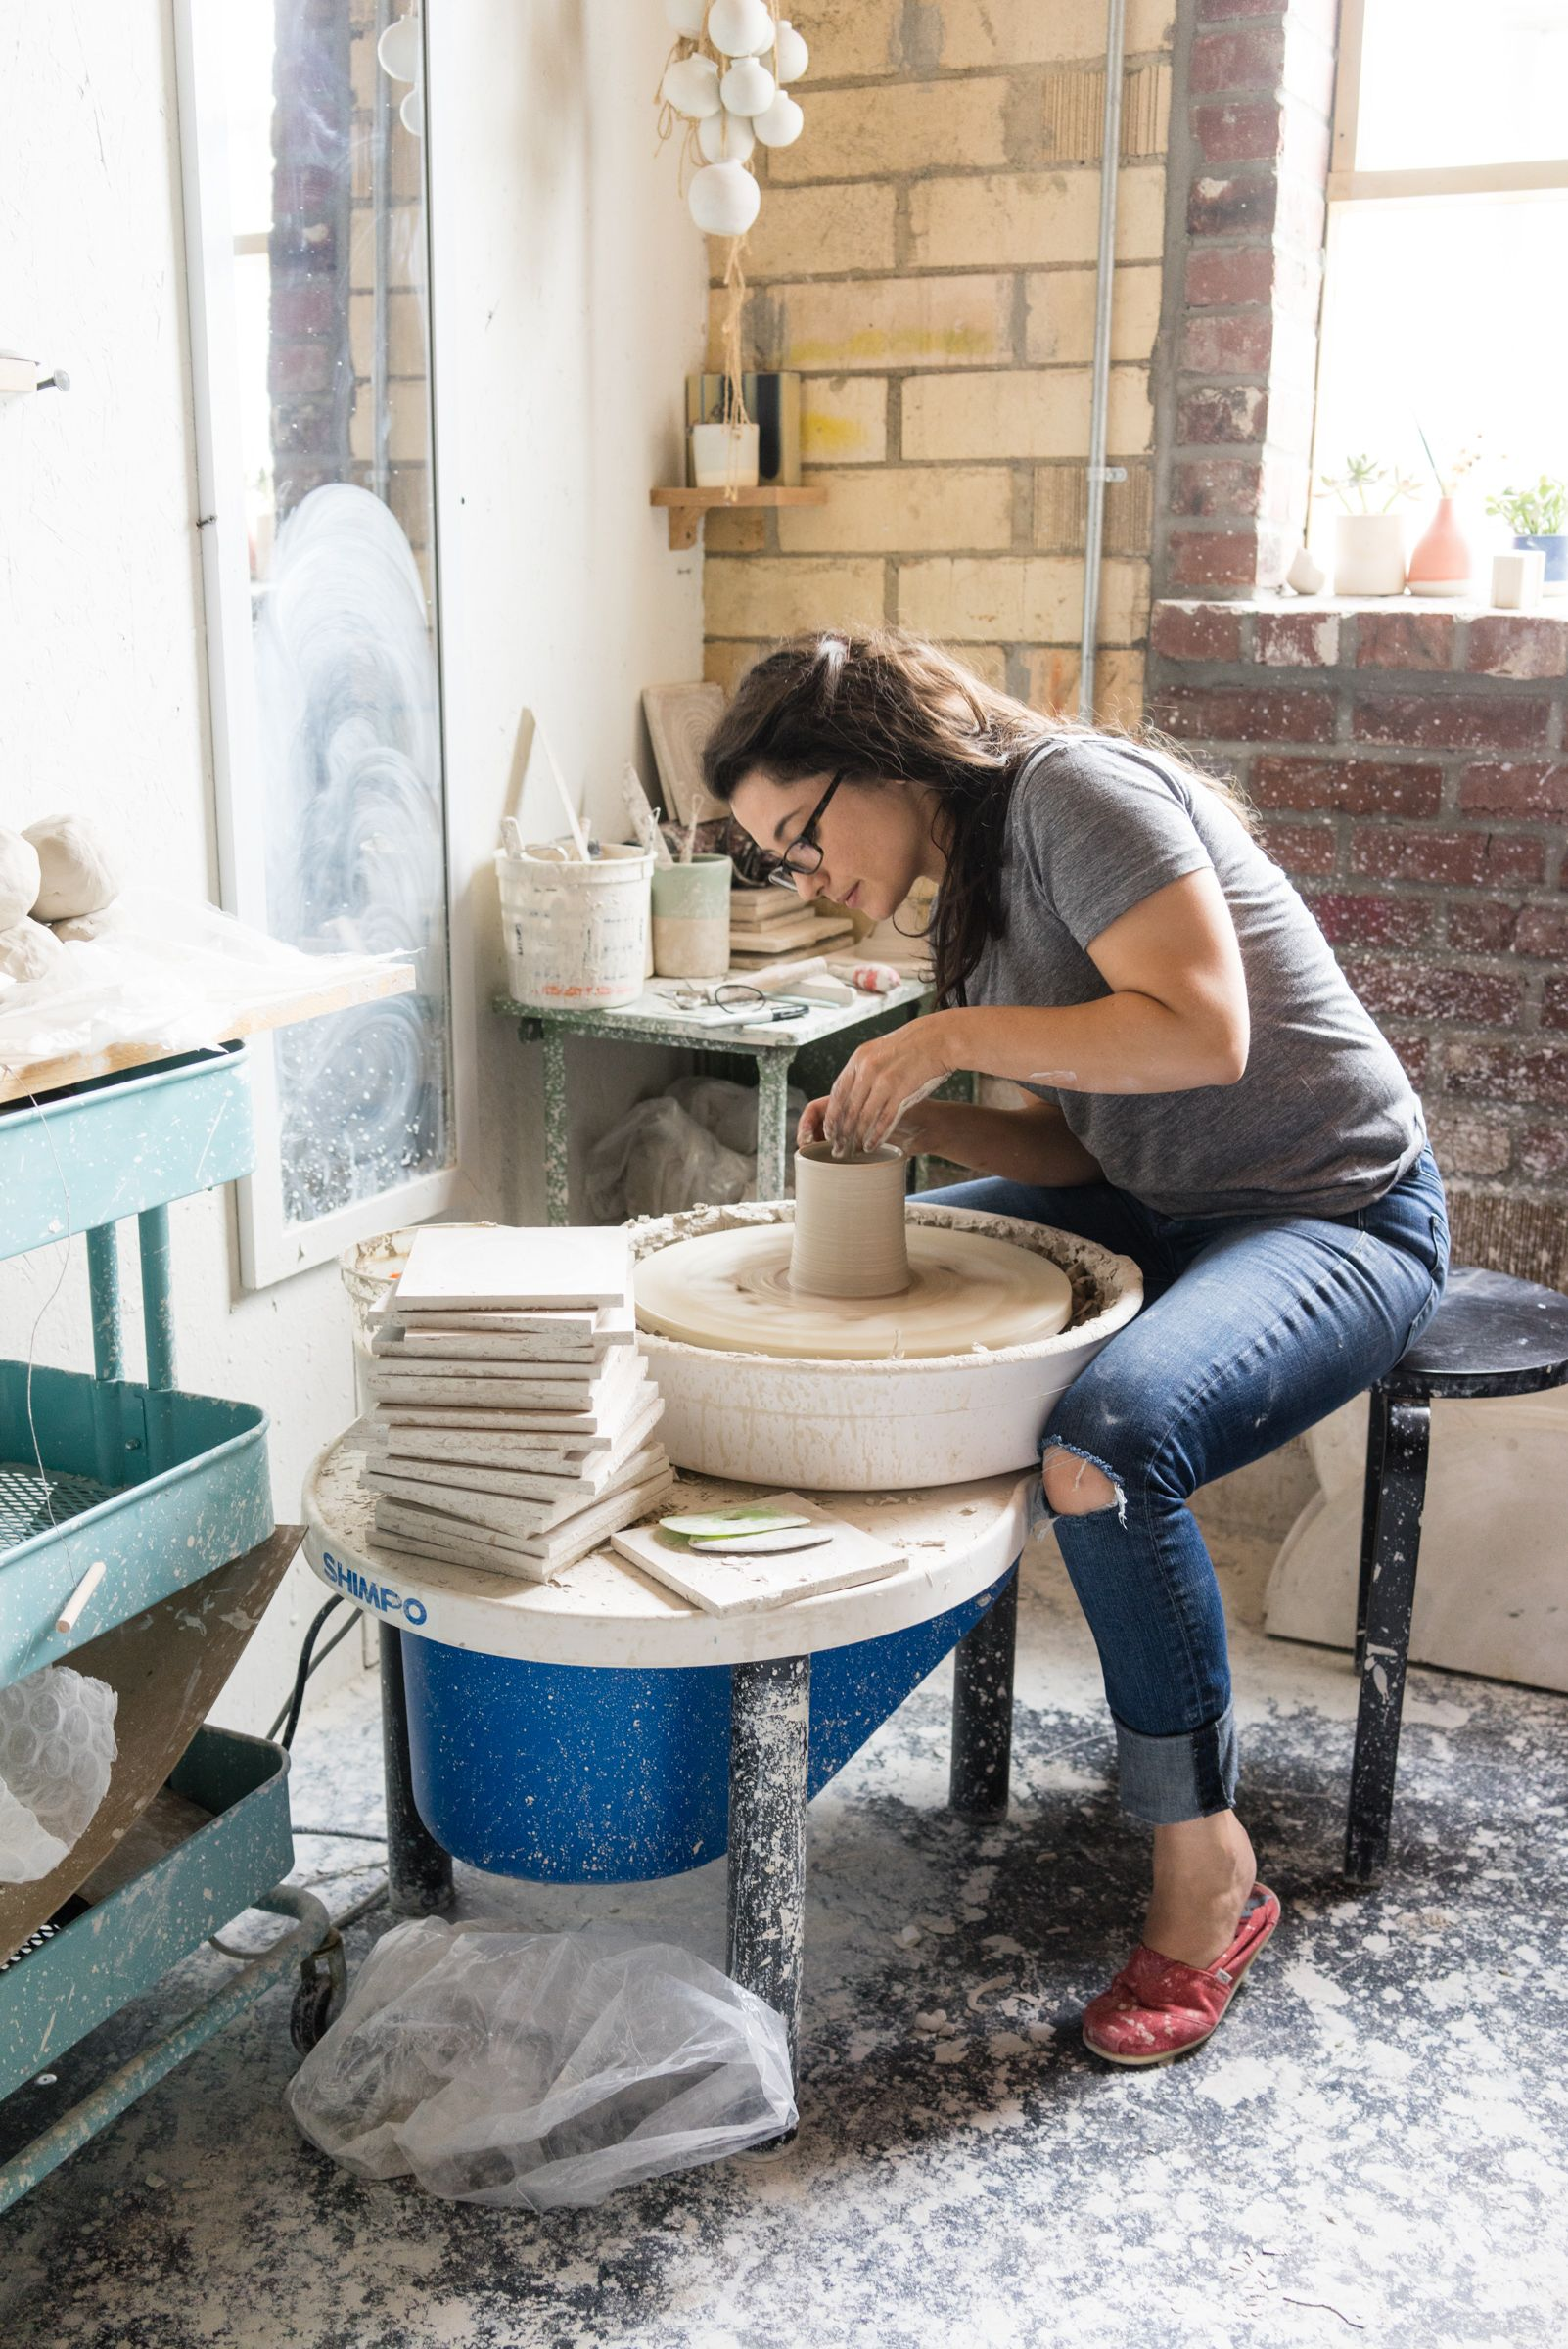 In addition to shaping and firing her own clay britt